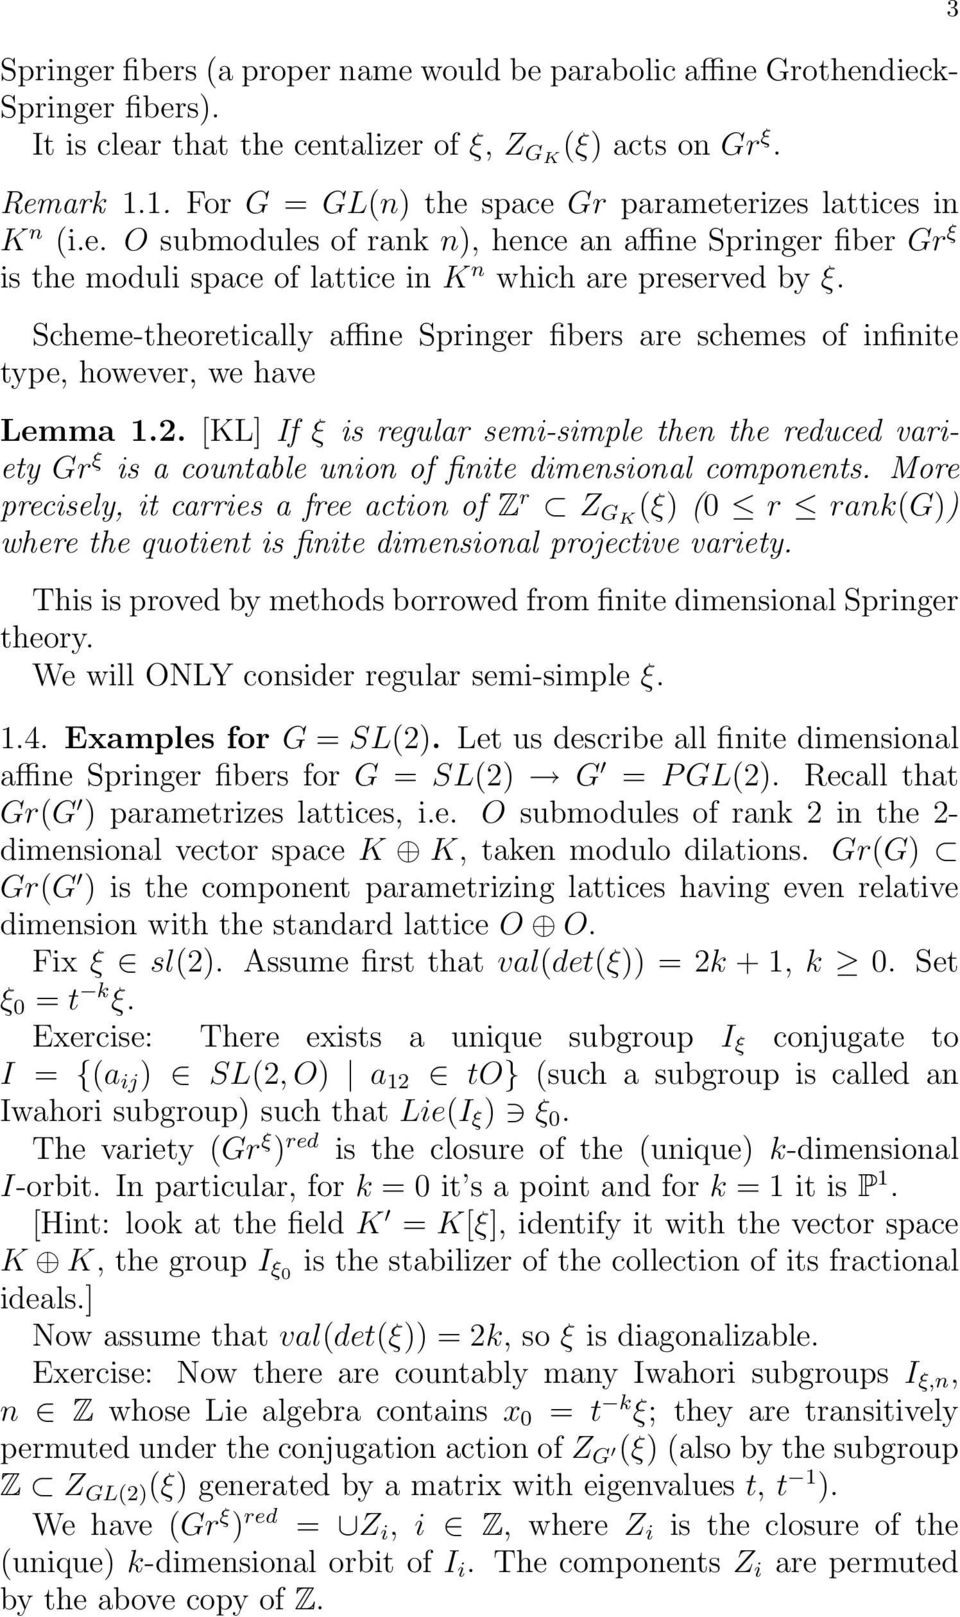 Scheme-theoretically affine Springer fibers are schemes of infinite type, however, we have Lemma 1.2.